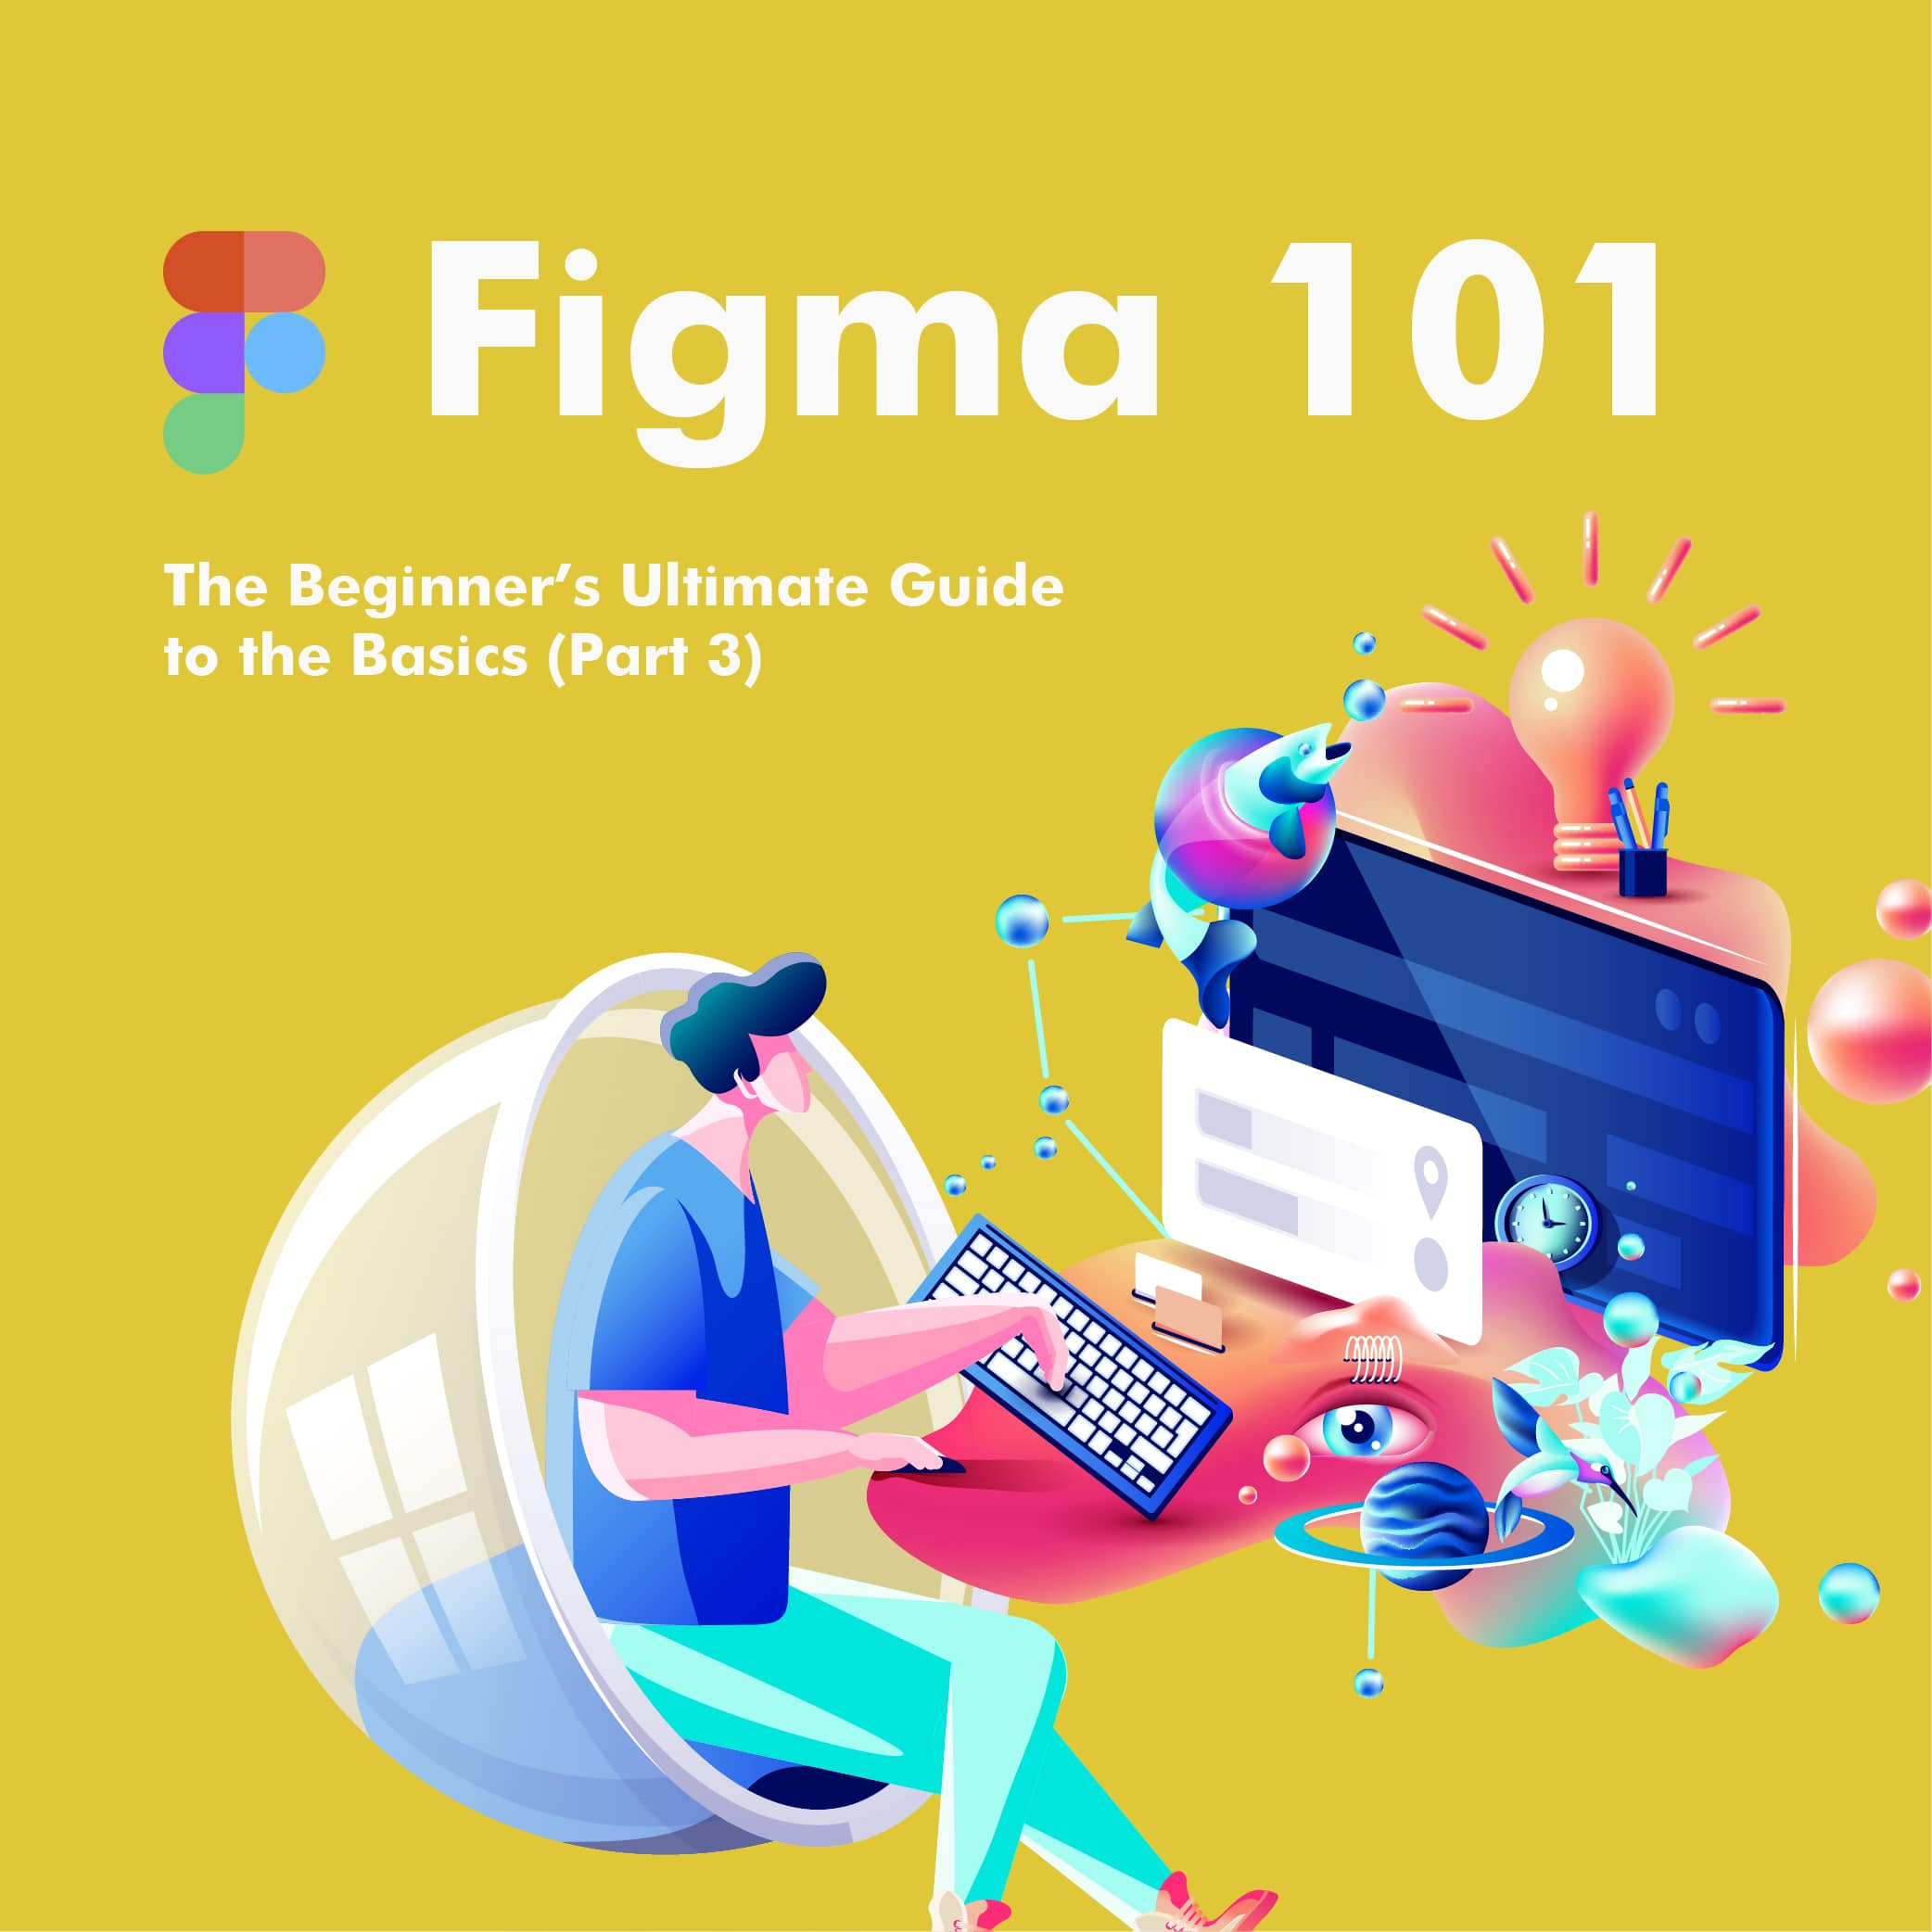 52511Figma 101 – The Beginner's Ultimate Guide to the Basics (Part 3)